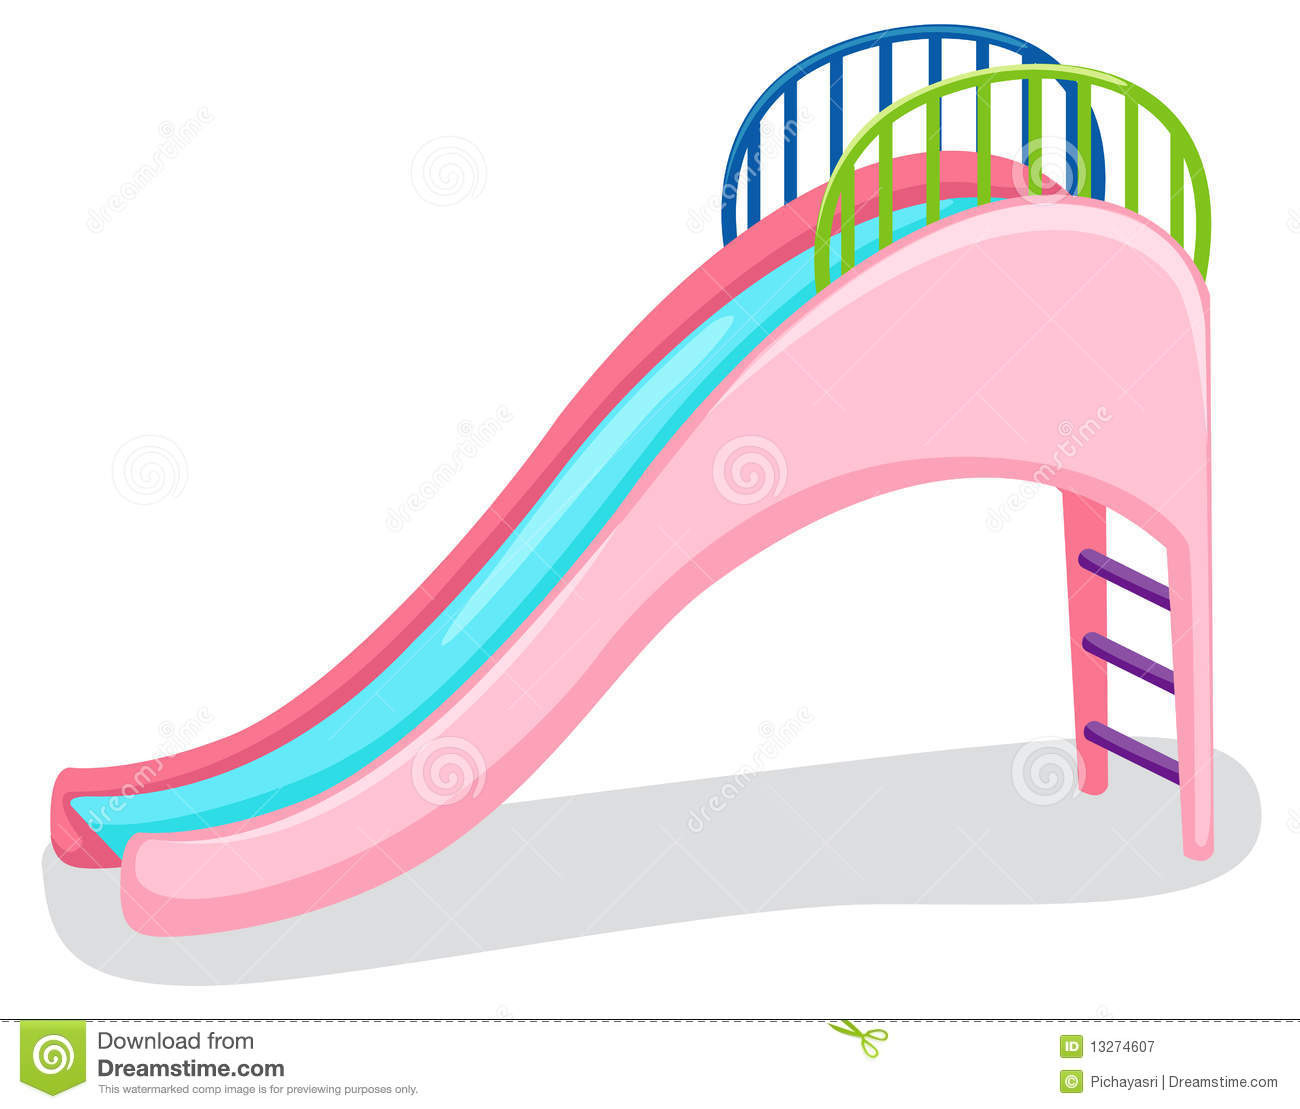 Playground Slide Clipart.